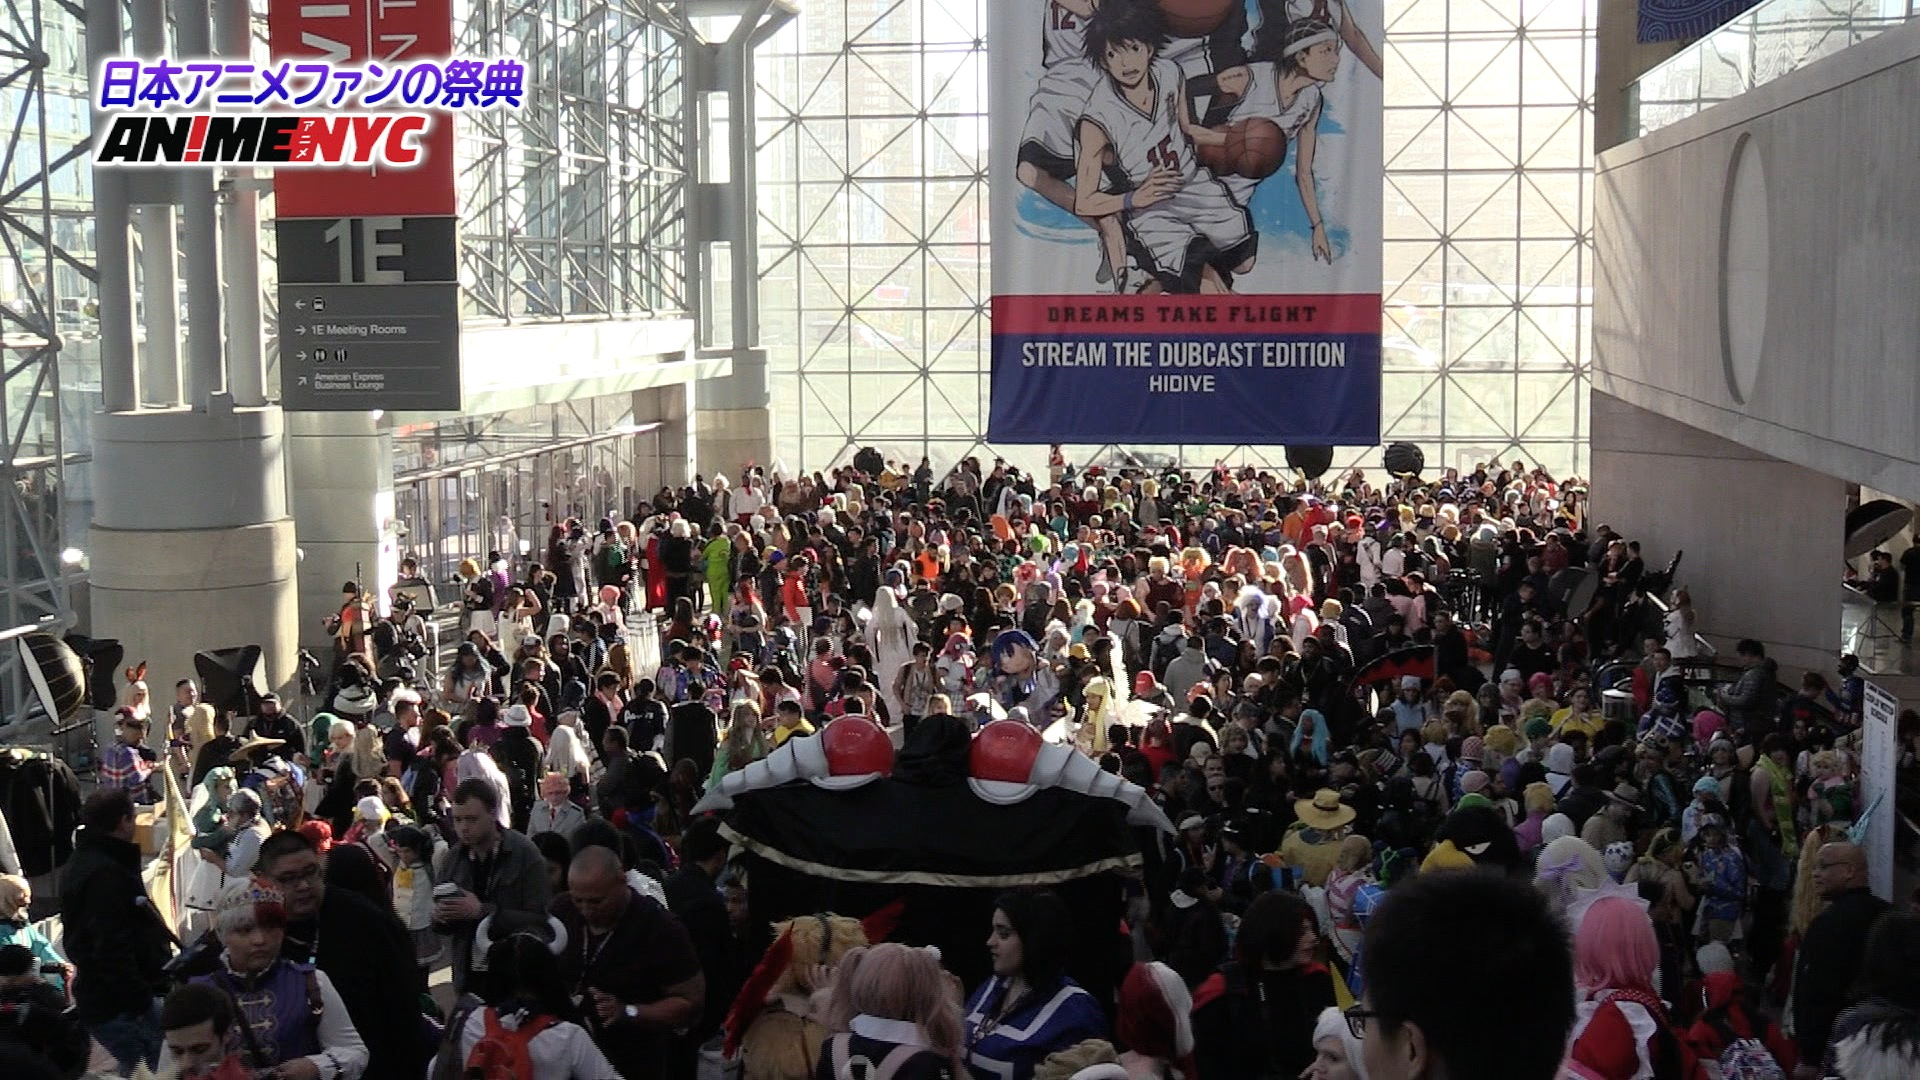 Image: アニメのコンベンション「Anime NYC」